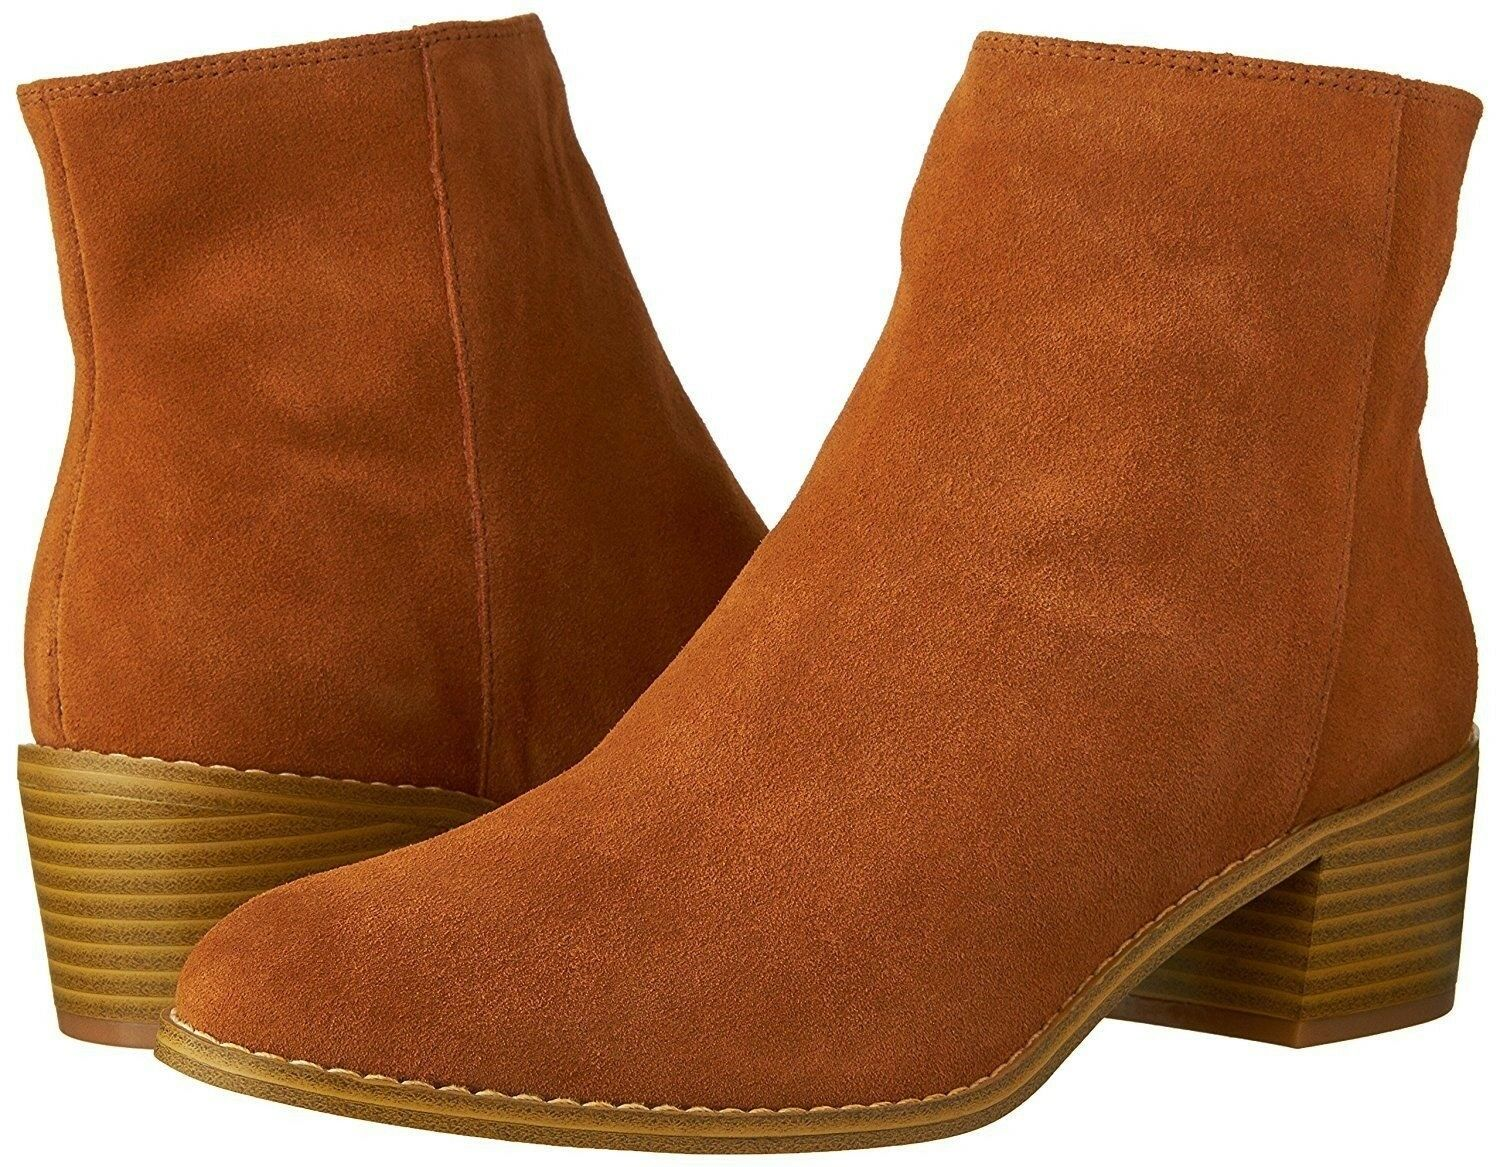 Women Dress shoes Clarks Breccan Myth Ankle Boot Zip Suede Tan Brown